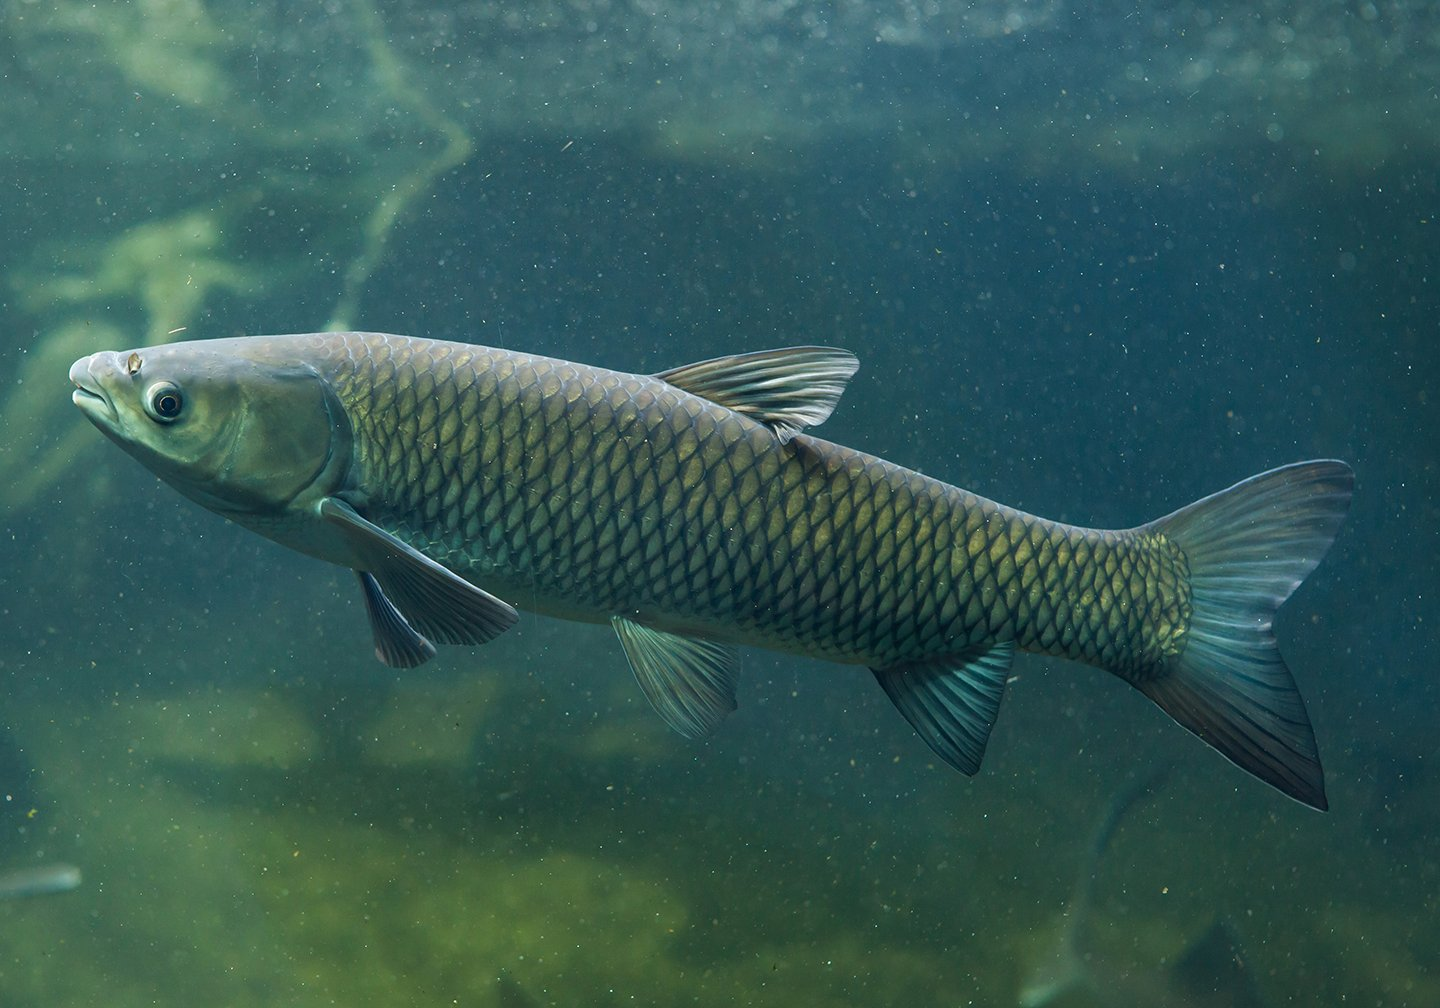 An Asian Grass Carp